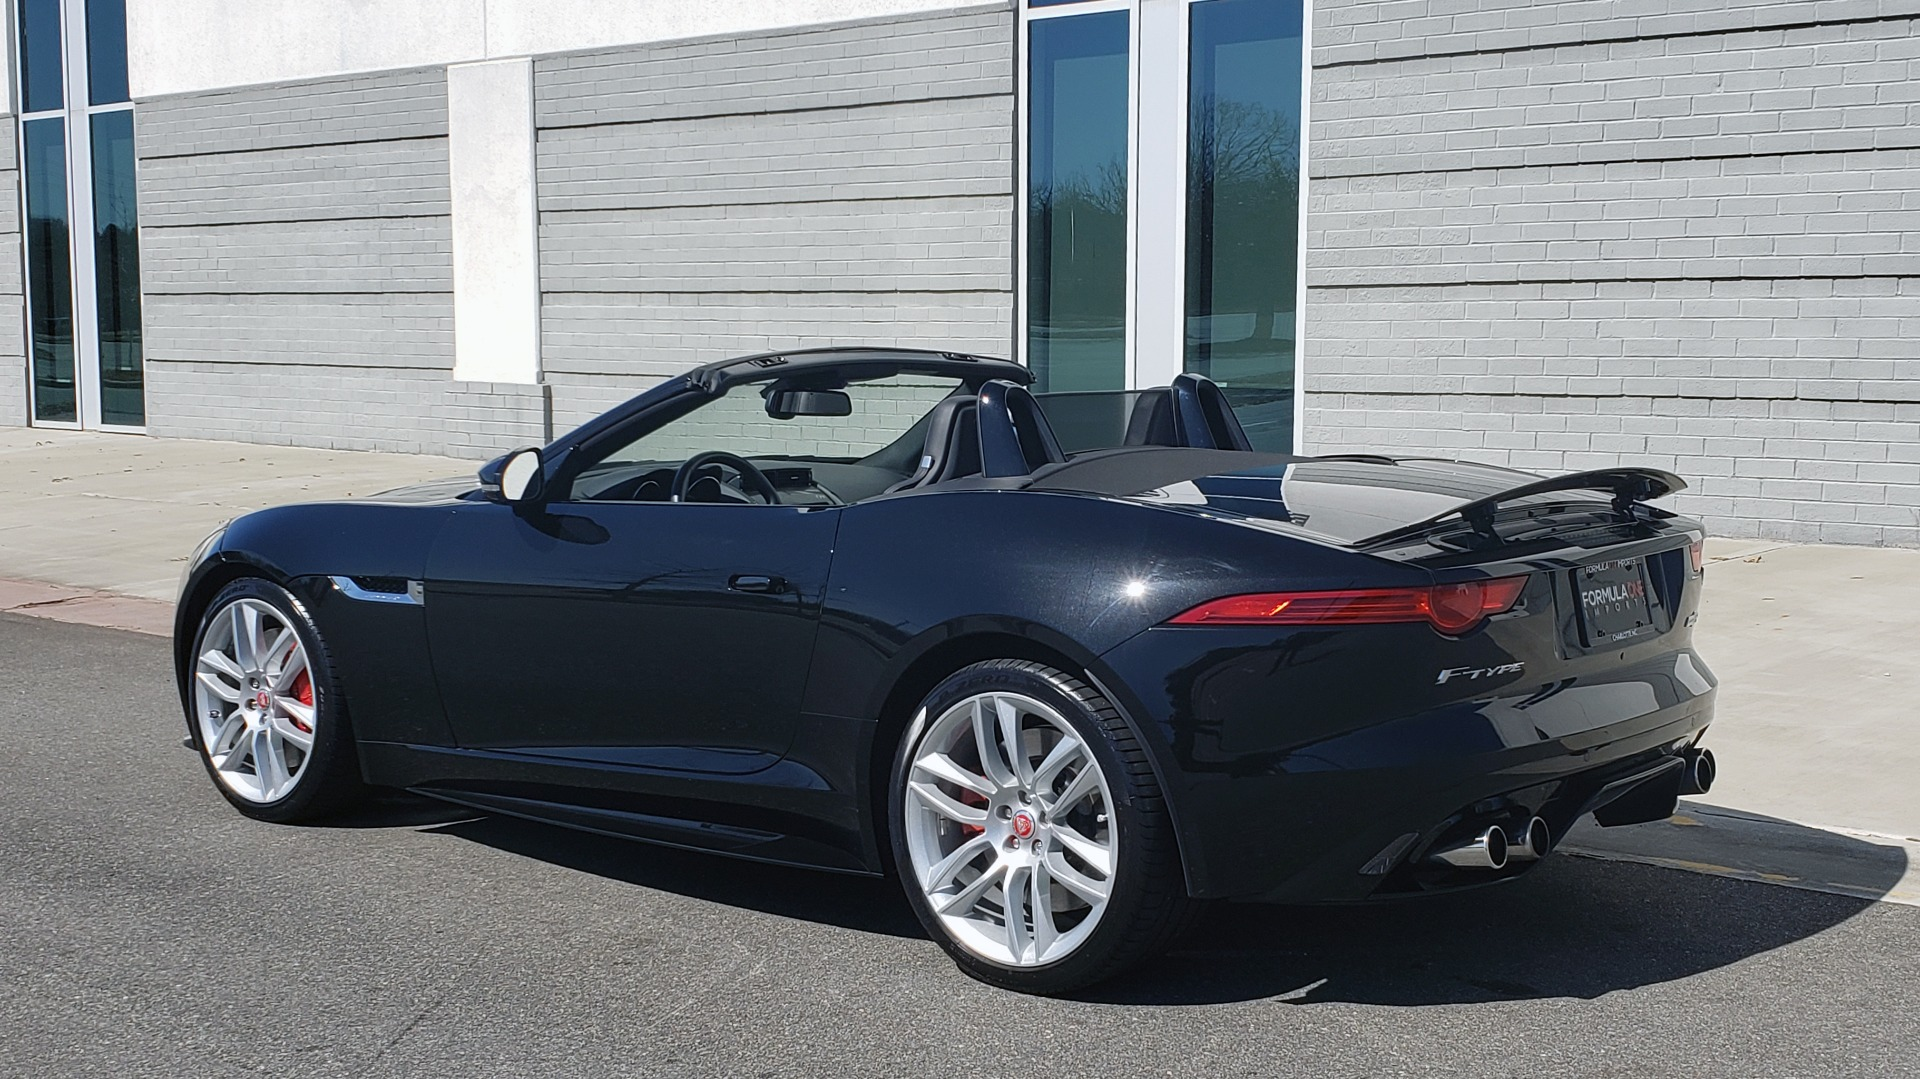 Used 2016 Jaguar F-TYPE R CONVERTIBLE / SC 5.0L 550HP / VISION PACK 3 / BSM / REARVIEW for sale $63,000 at Formula Imports in Charlotte NC 28227 6